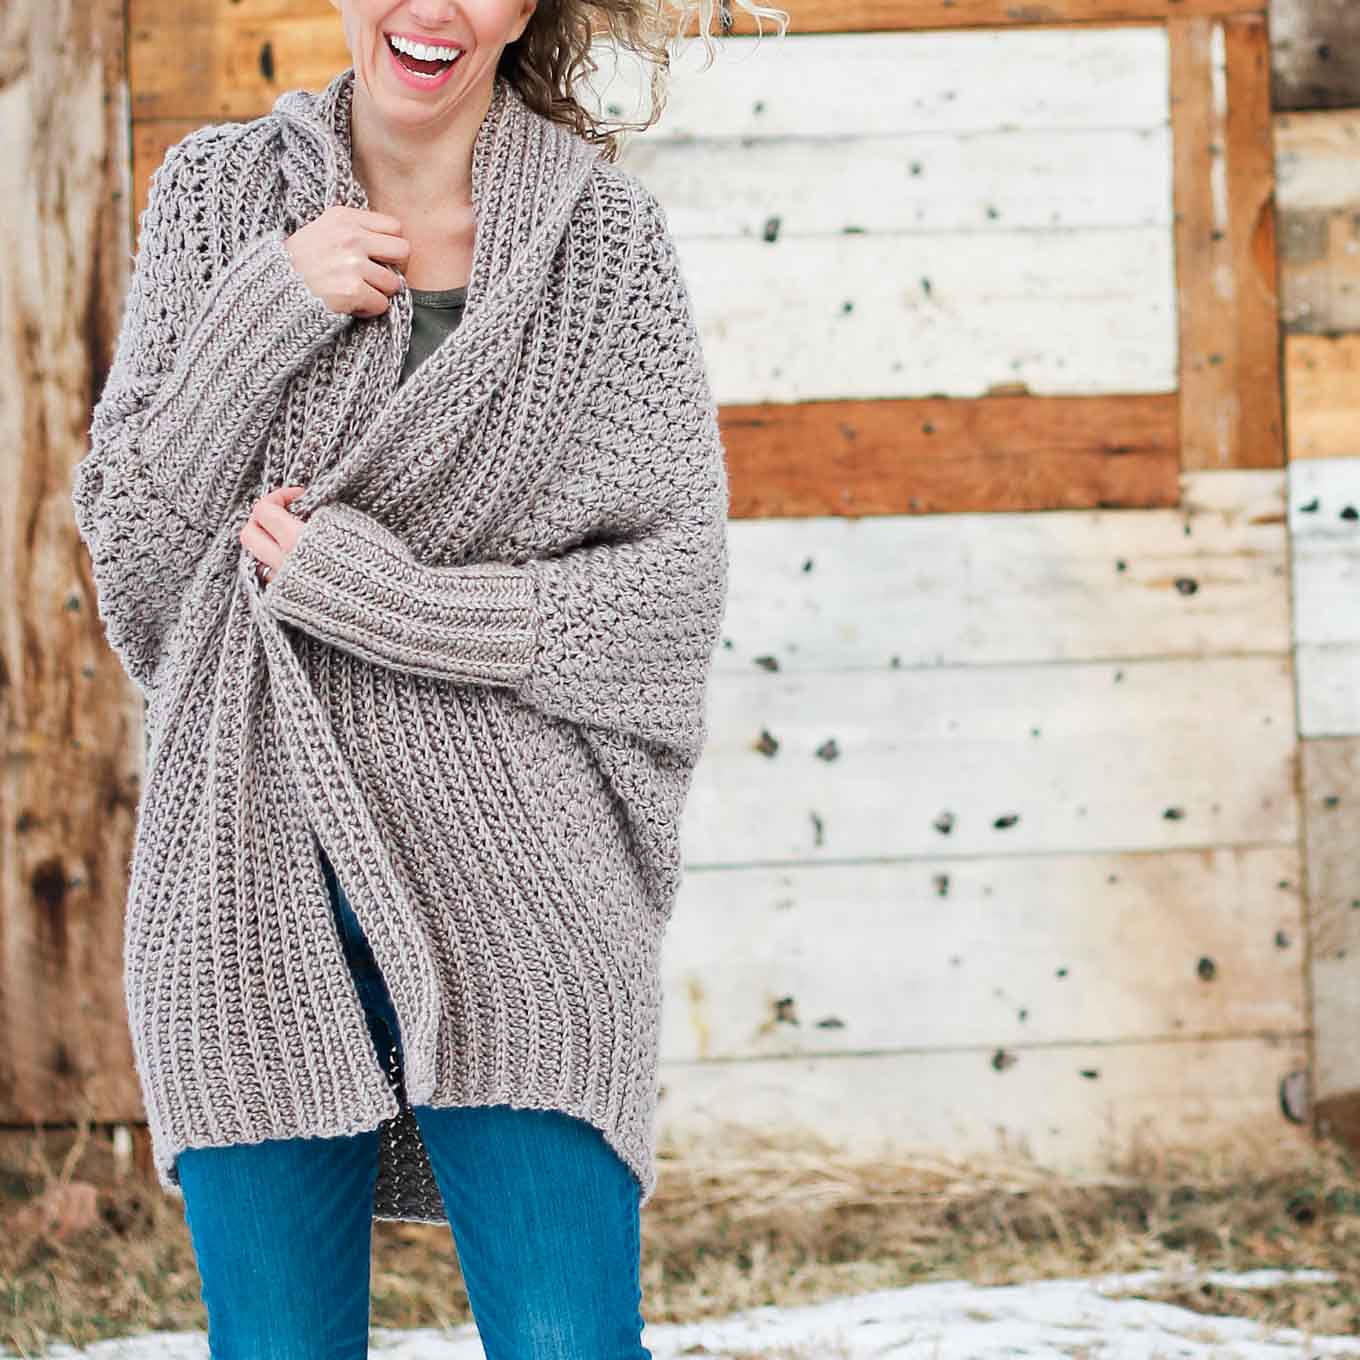 How To Crochet A Cardigan- The Habitat Cardigan Free Crochet Pattern